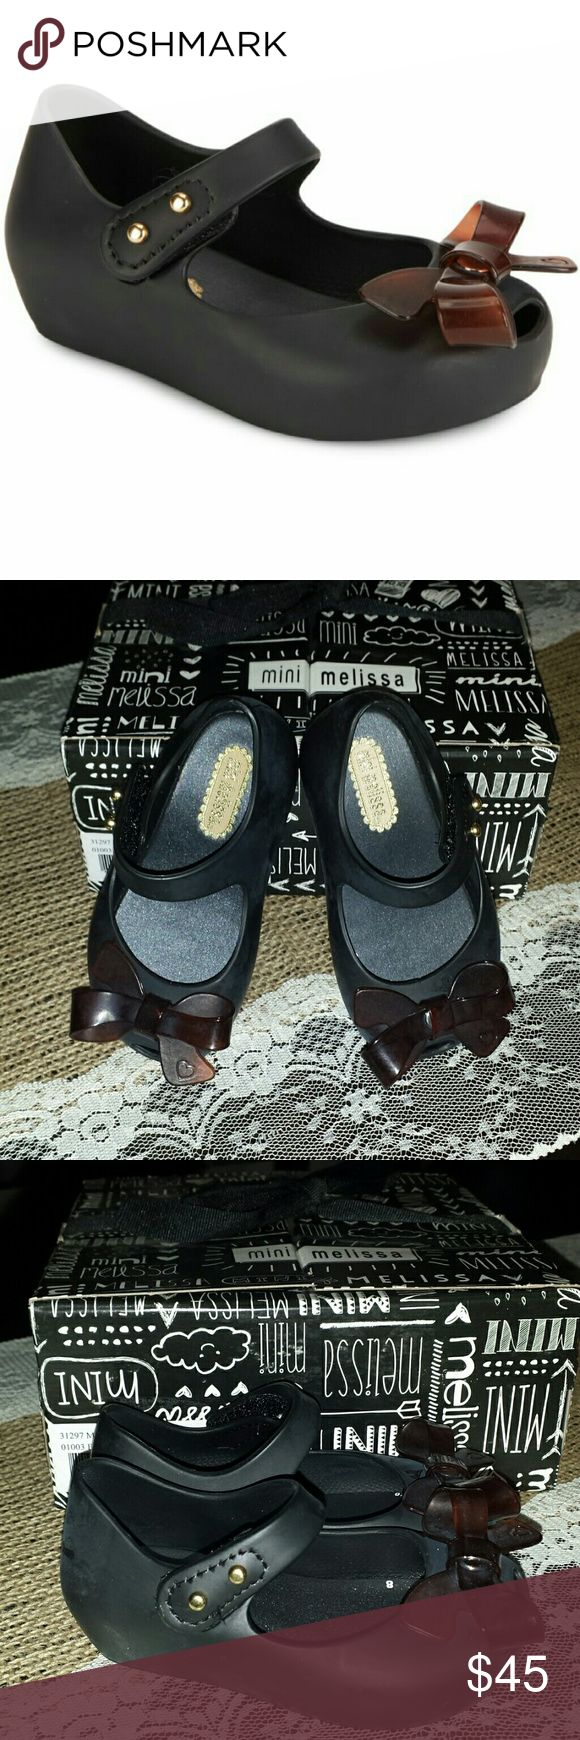 TODAY ONLY!!!  Mini Melissa Mary Janes Price Firm.  Adorable bow mary janes.  Brand new in box. Shoes